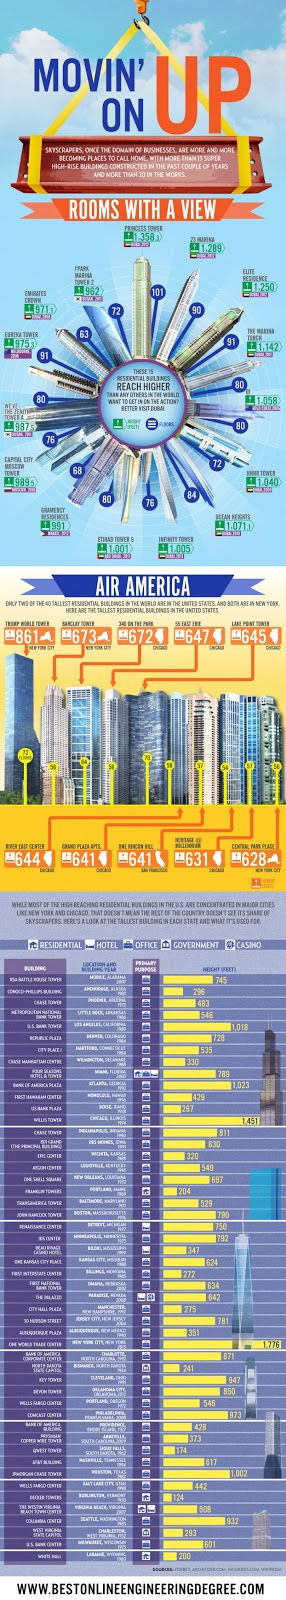 Worlds Tallest Buildings infographic